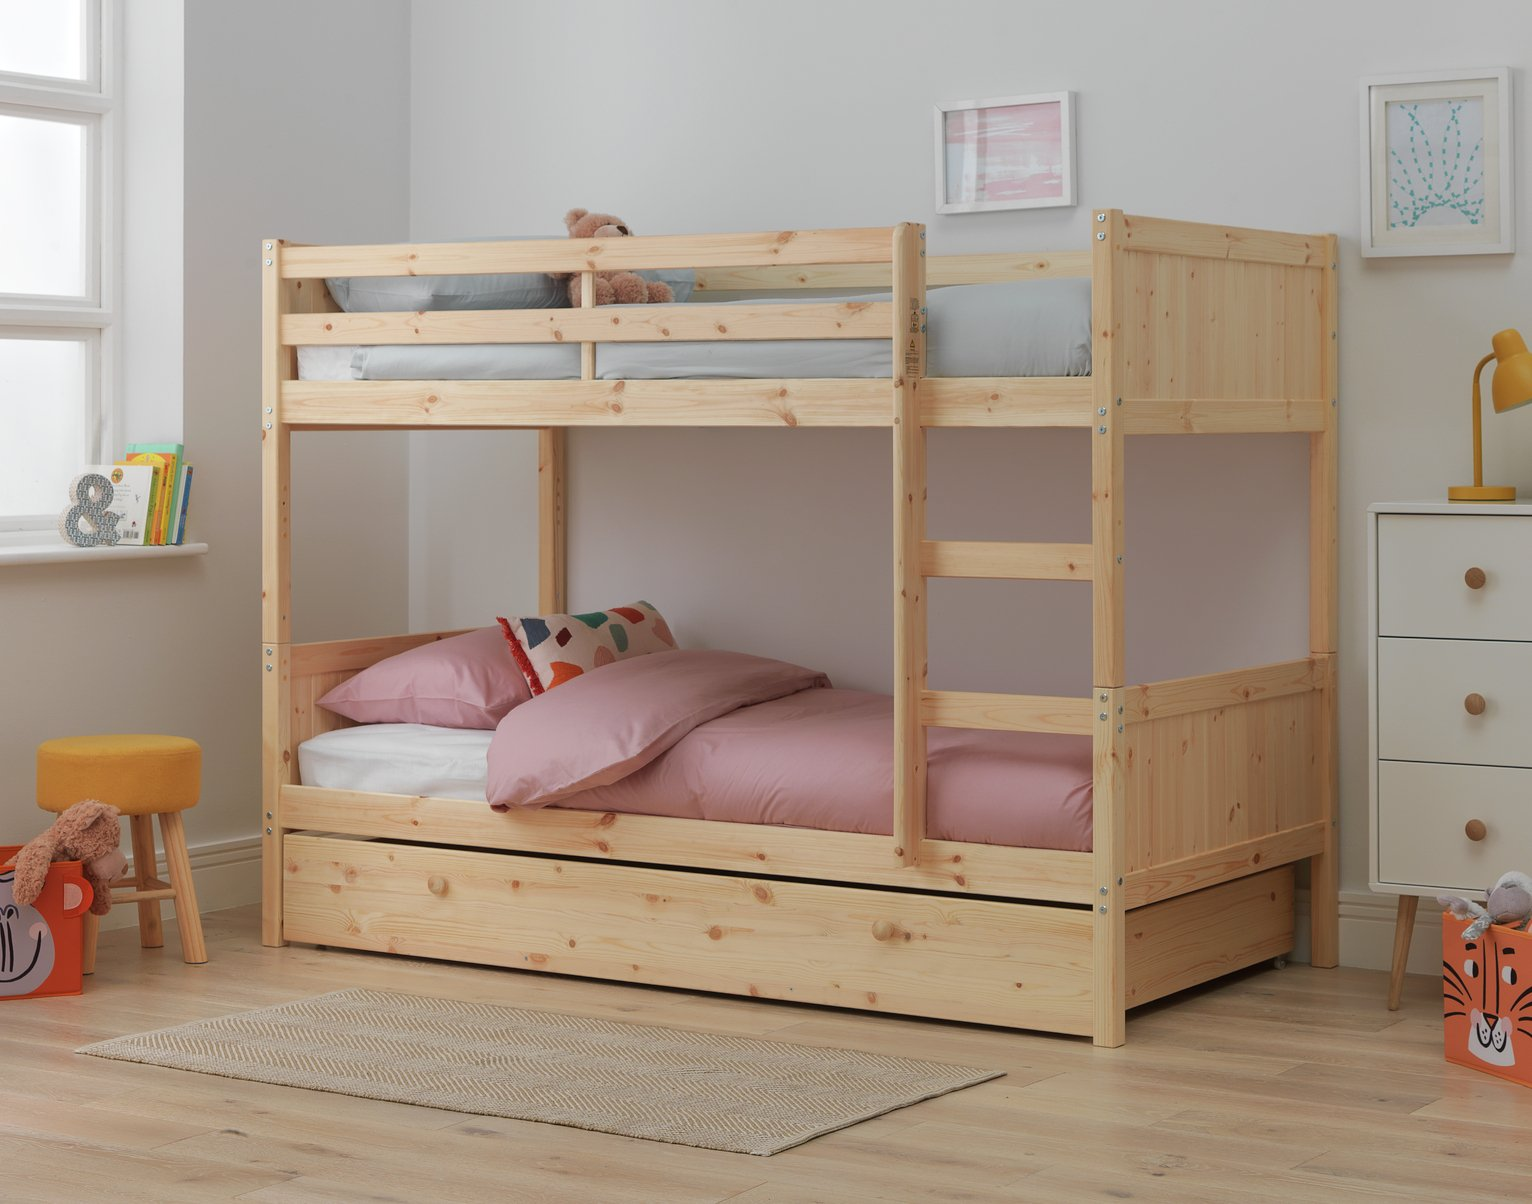 Argos Home Detachable Pine Bunk Bed Frame with Drawer